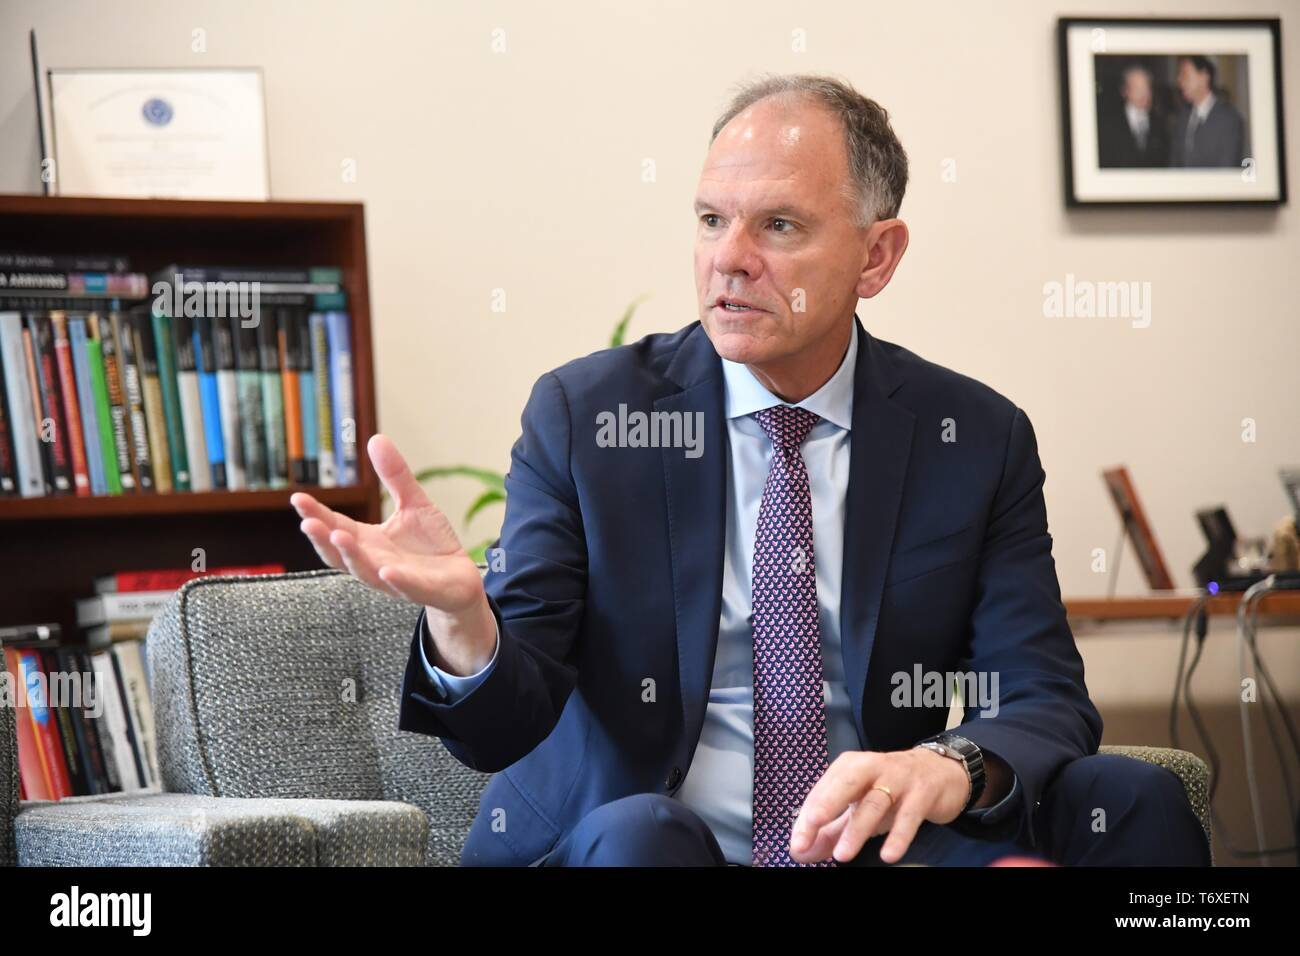 """Philadelphia, USA. 19th Apr, 2019. Geoffrey Garrett, dean of the Wharton School at the University of Pennsylvania, speaks to Xinhua during an exclusive interview in Philadelphia, the United States, April 19, 2019. Technology competition between the United States and China won't lead to so-called """"decoupling"""" because the two economies are """"tightly integrated,"""" said Geoffrey Garrett. TO GO WITH Interview: U.S.-China technology competition won't lead to """"decoupling,"""" says Wharton dean Credit: Yang Chenglin/Xinhua/Alamy Live News Stock Photo"""